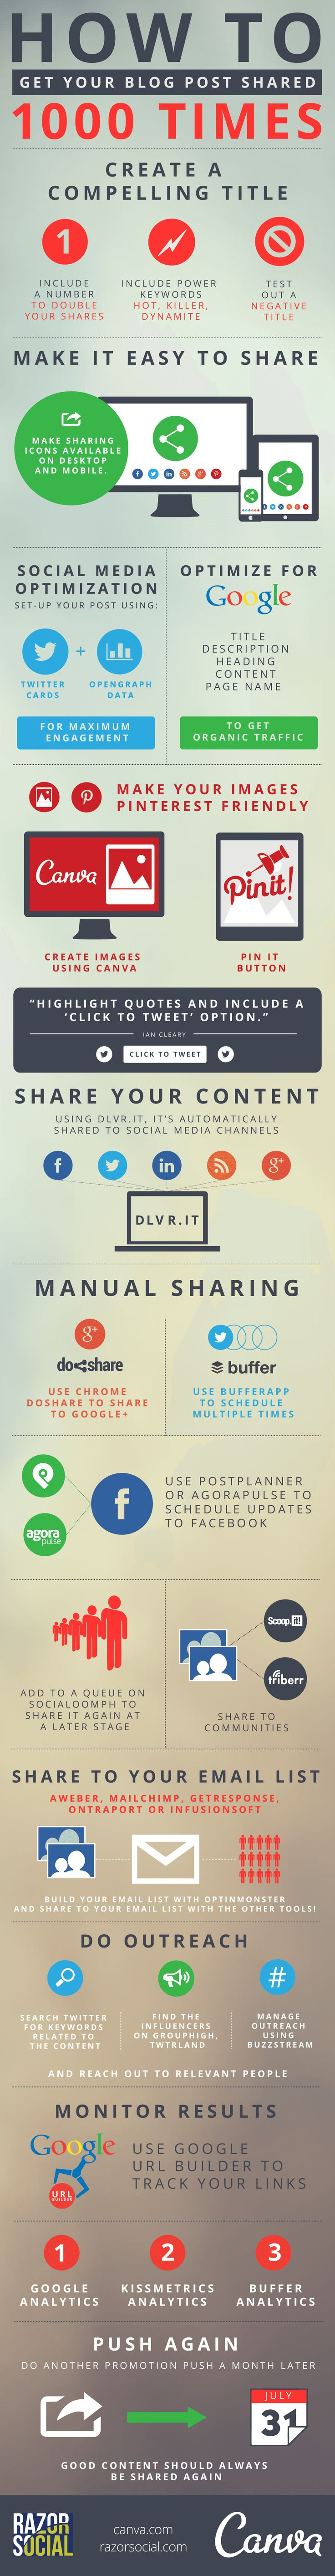 Promote Your Blog Post To Get Over 1000 Shares – Infographic